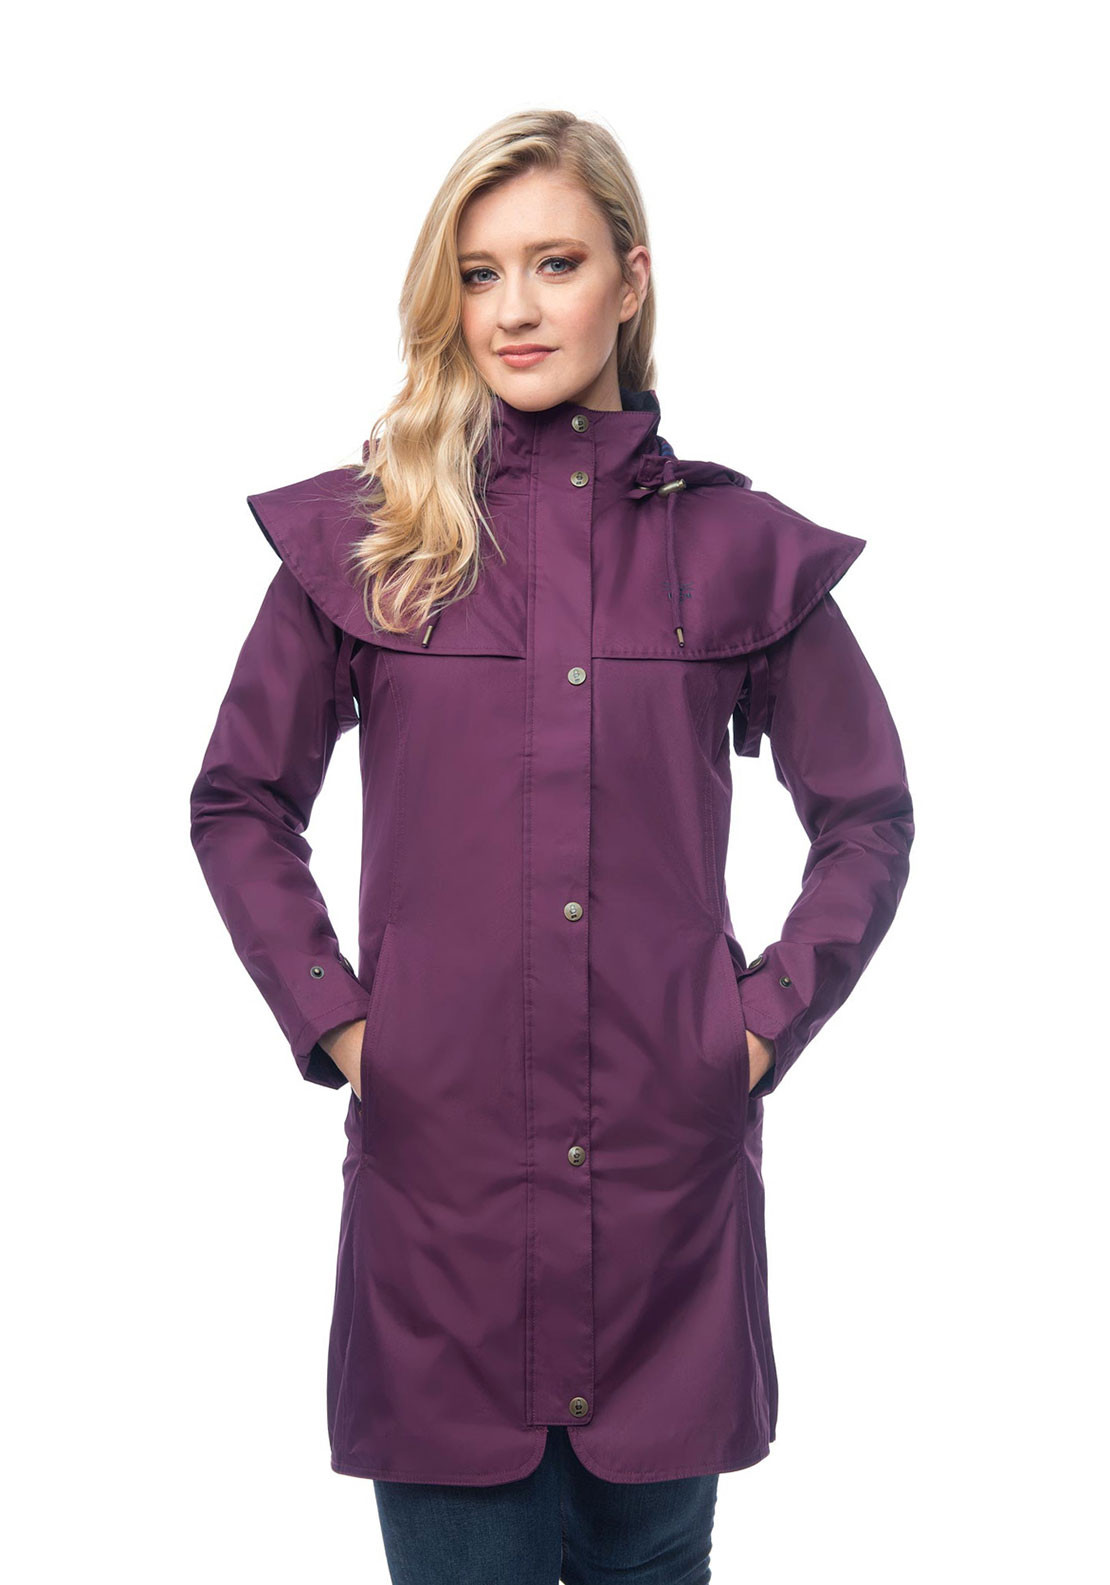 Lighthouse Outrider Hooded Raincoat, Plum